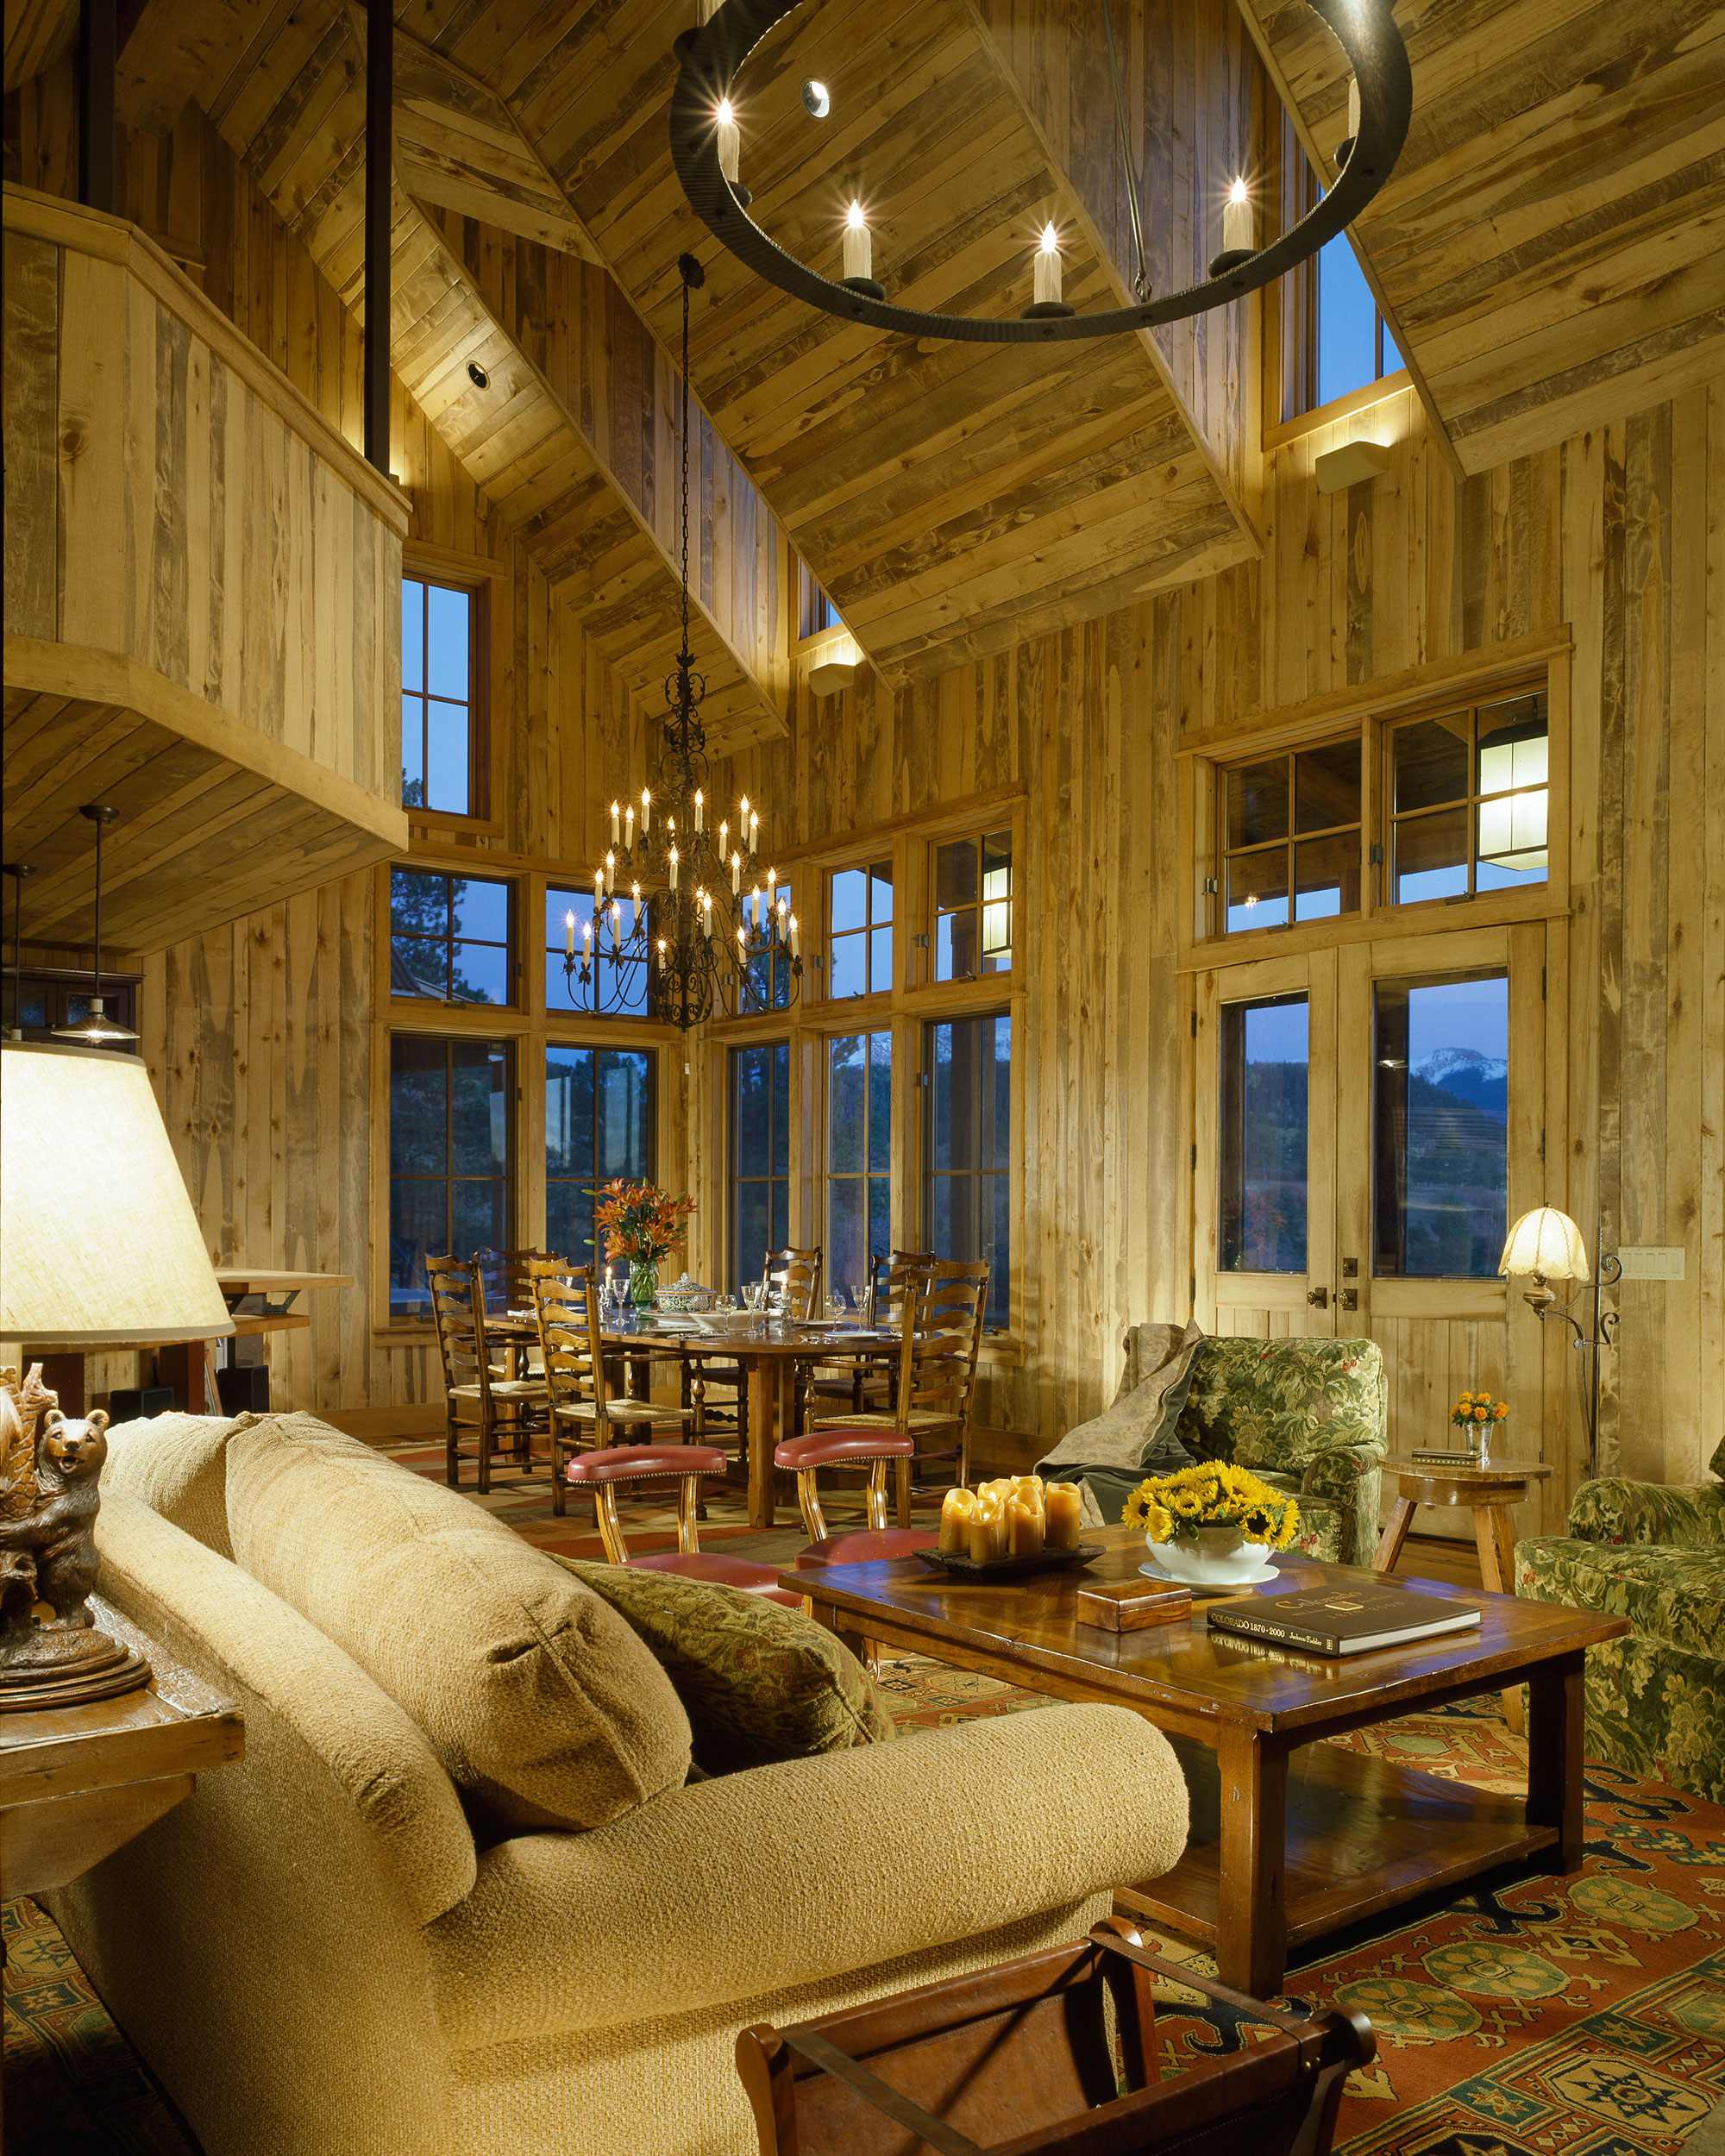 Cabin in the Woods Brewster McLeod Architects